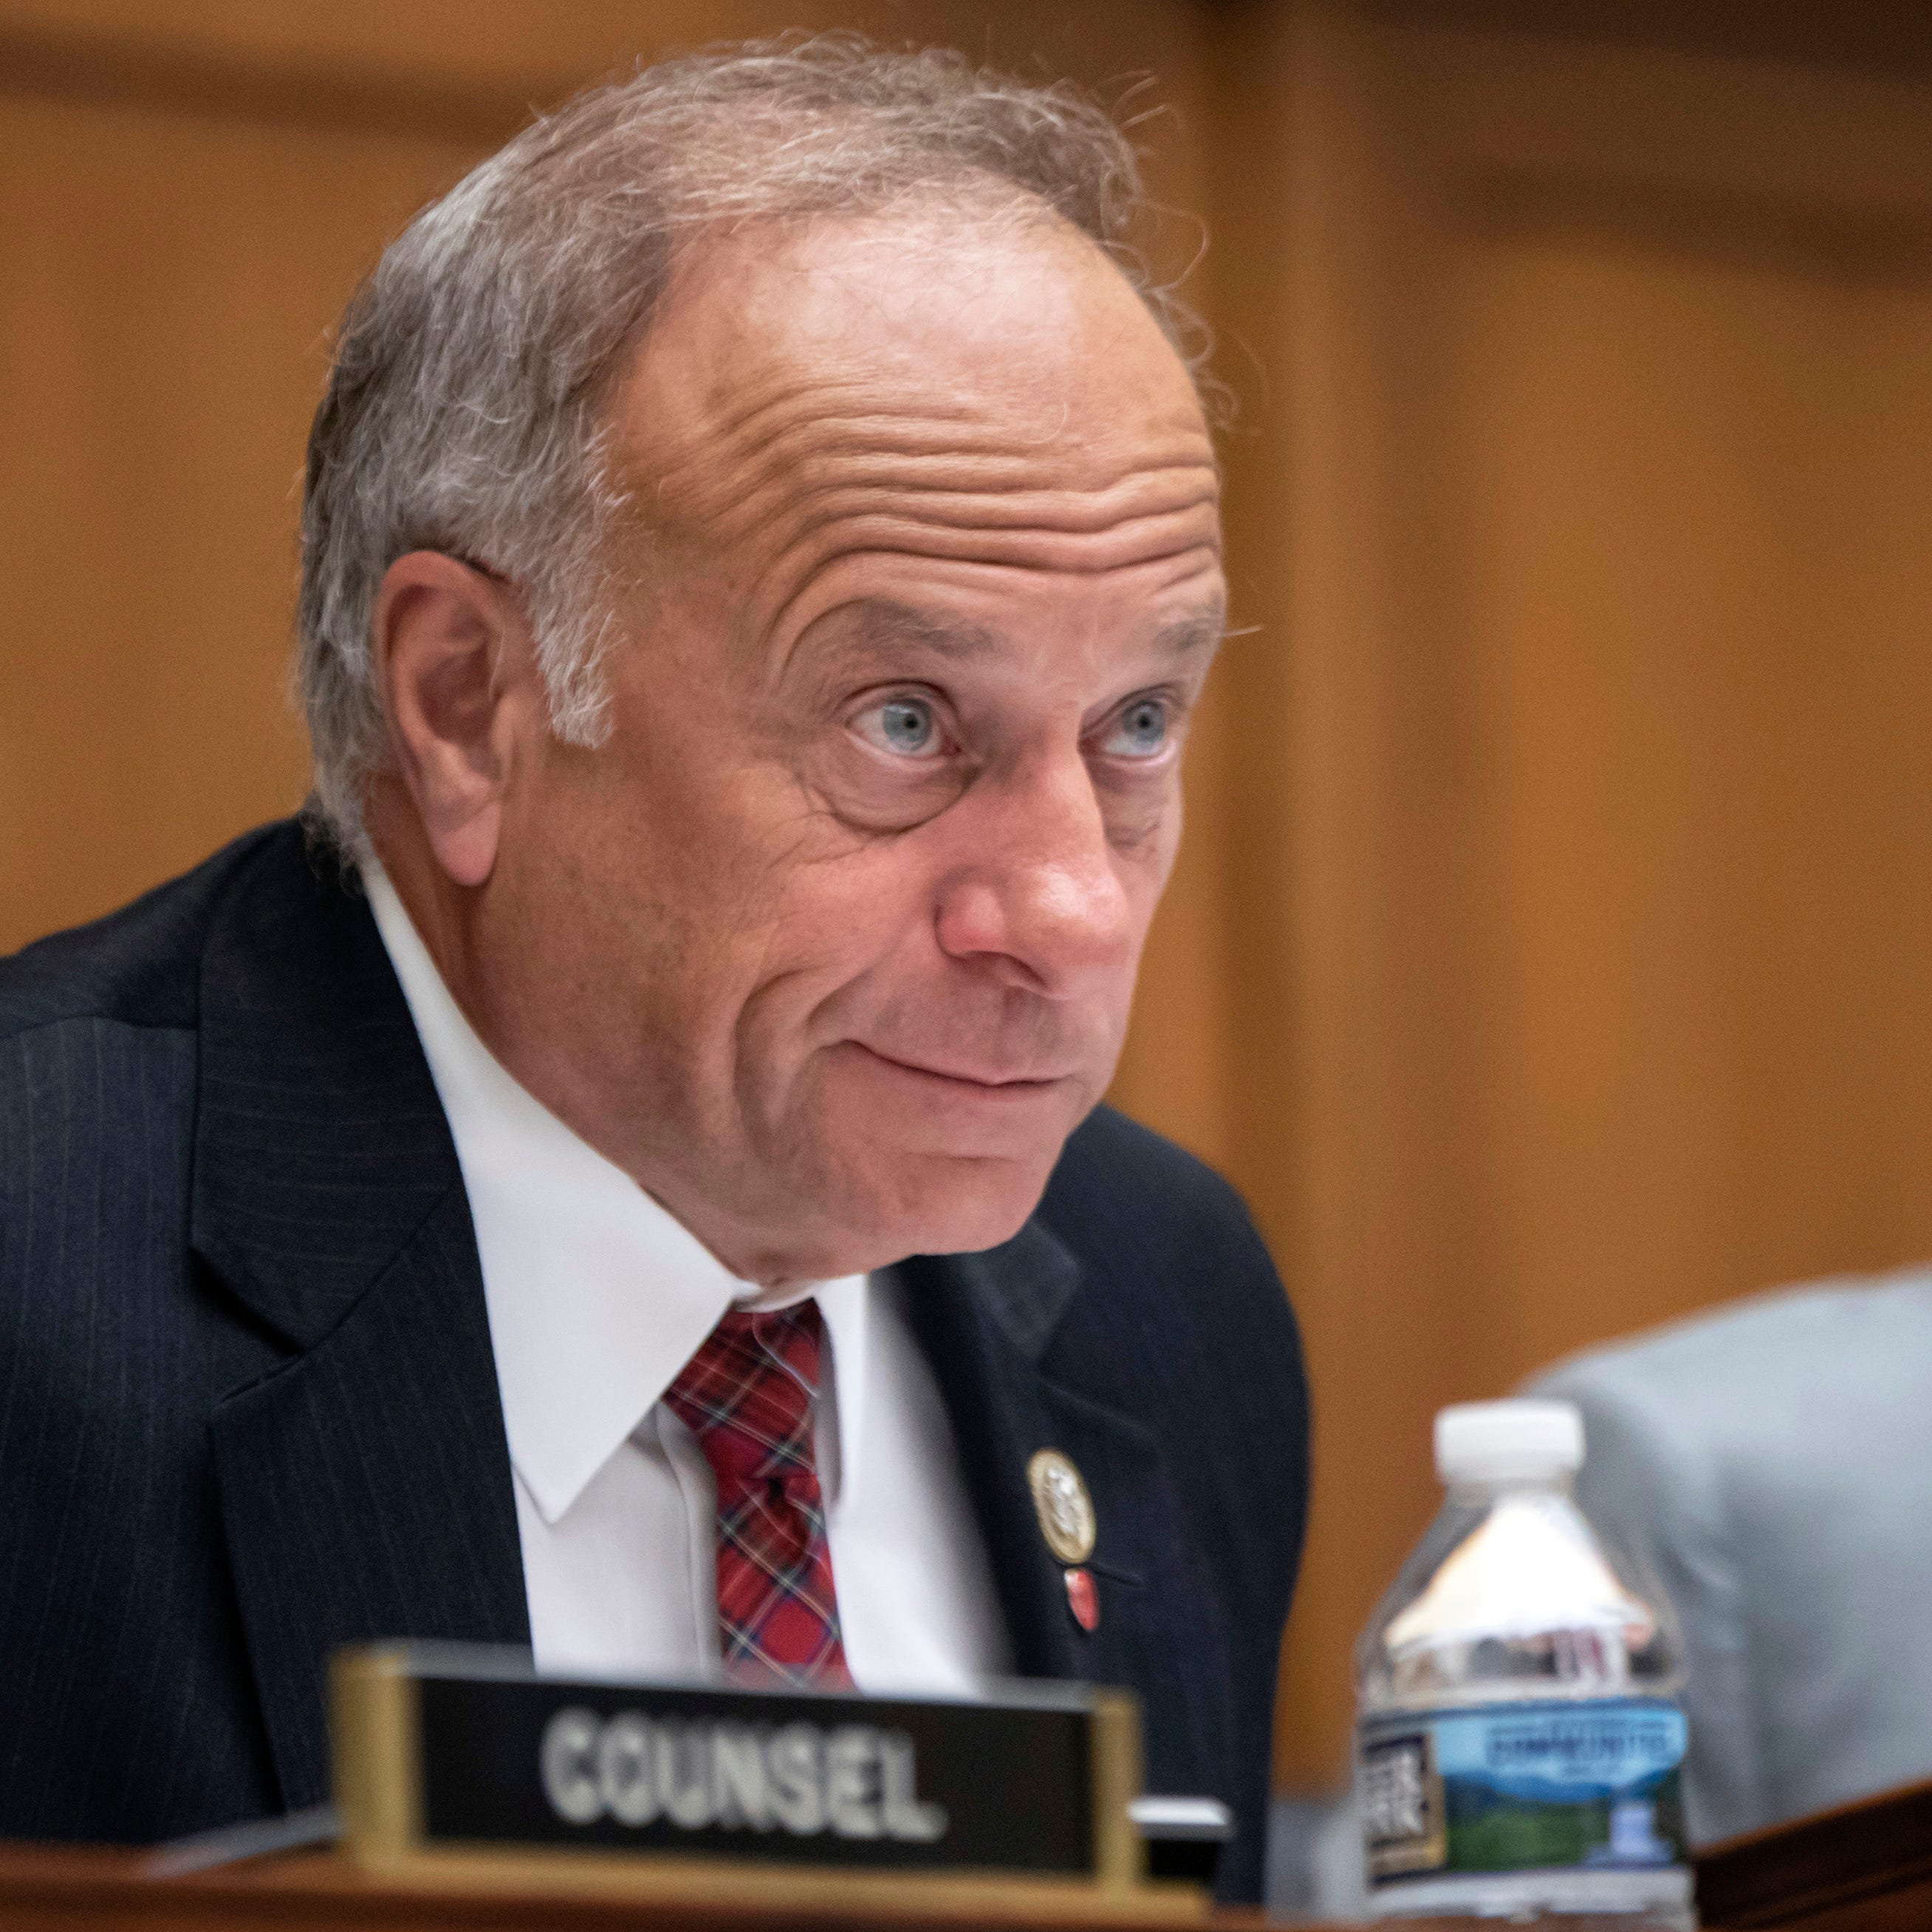 House passes resolution rebuking Steve King after comments on white supremacy, nationalism